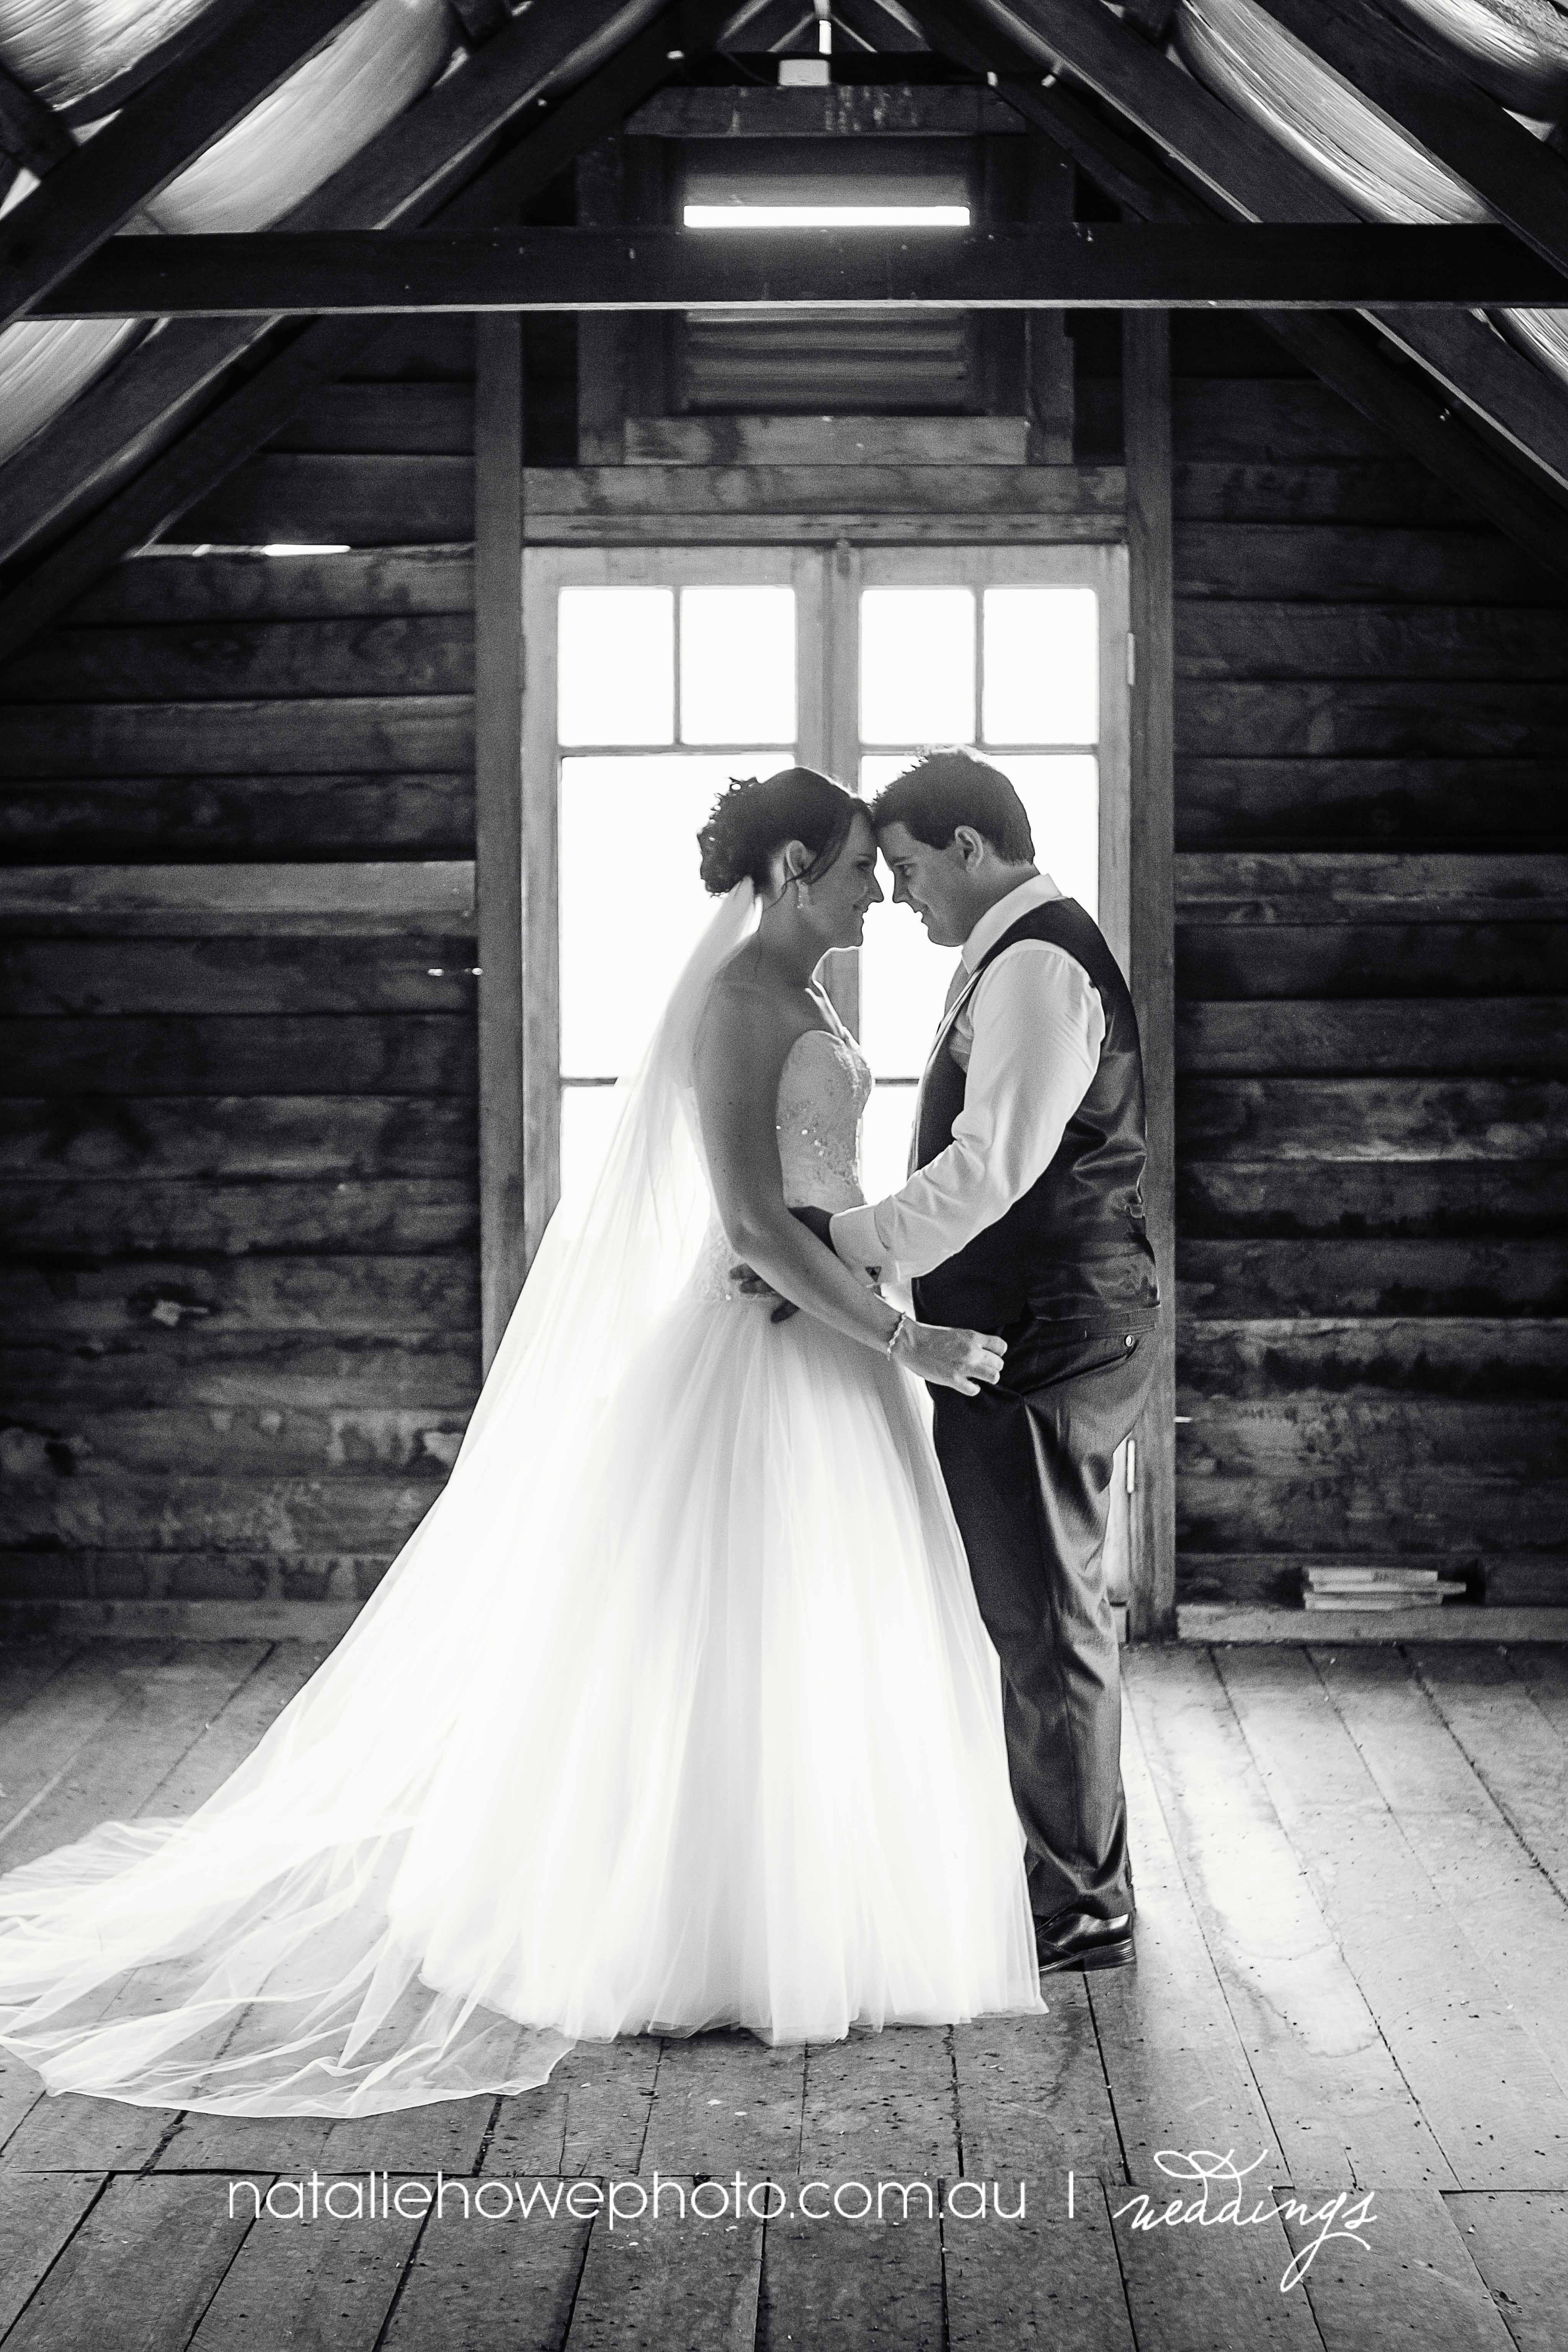 A beautiful black and white wedding photo in the Sunnybrook Barn at the Sydney Polo Club.